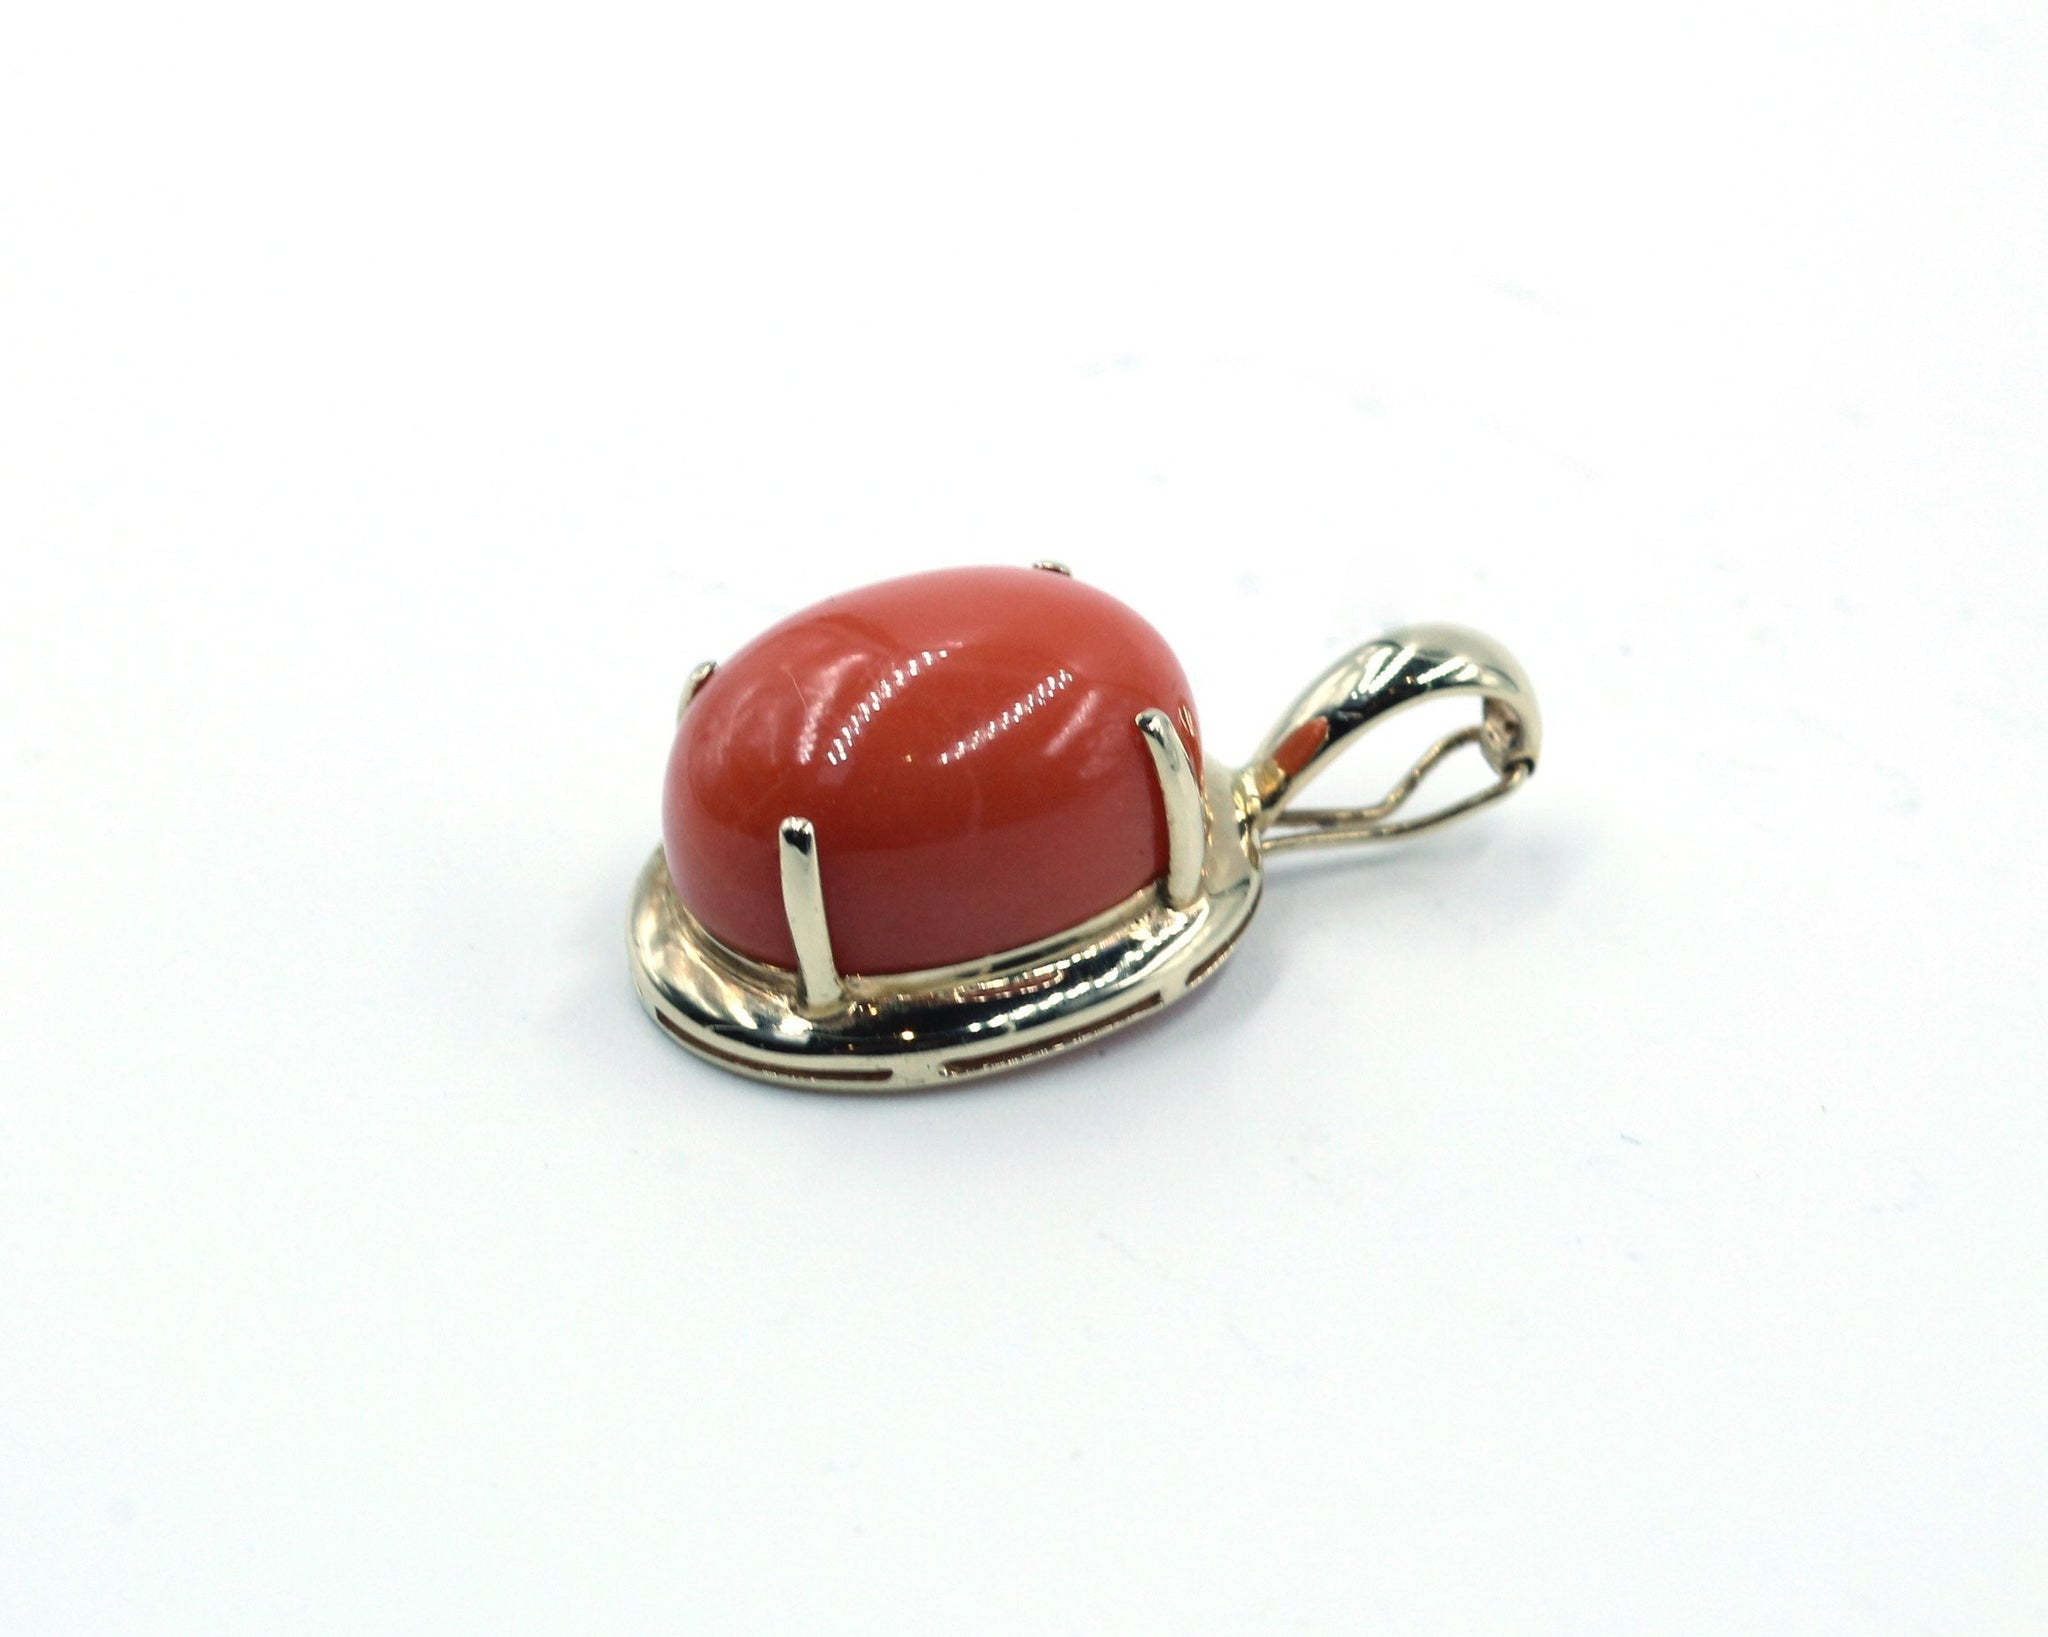 Vintage Cultured Pearls with Coral Pendant, SOLD